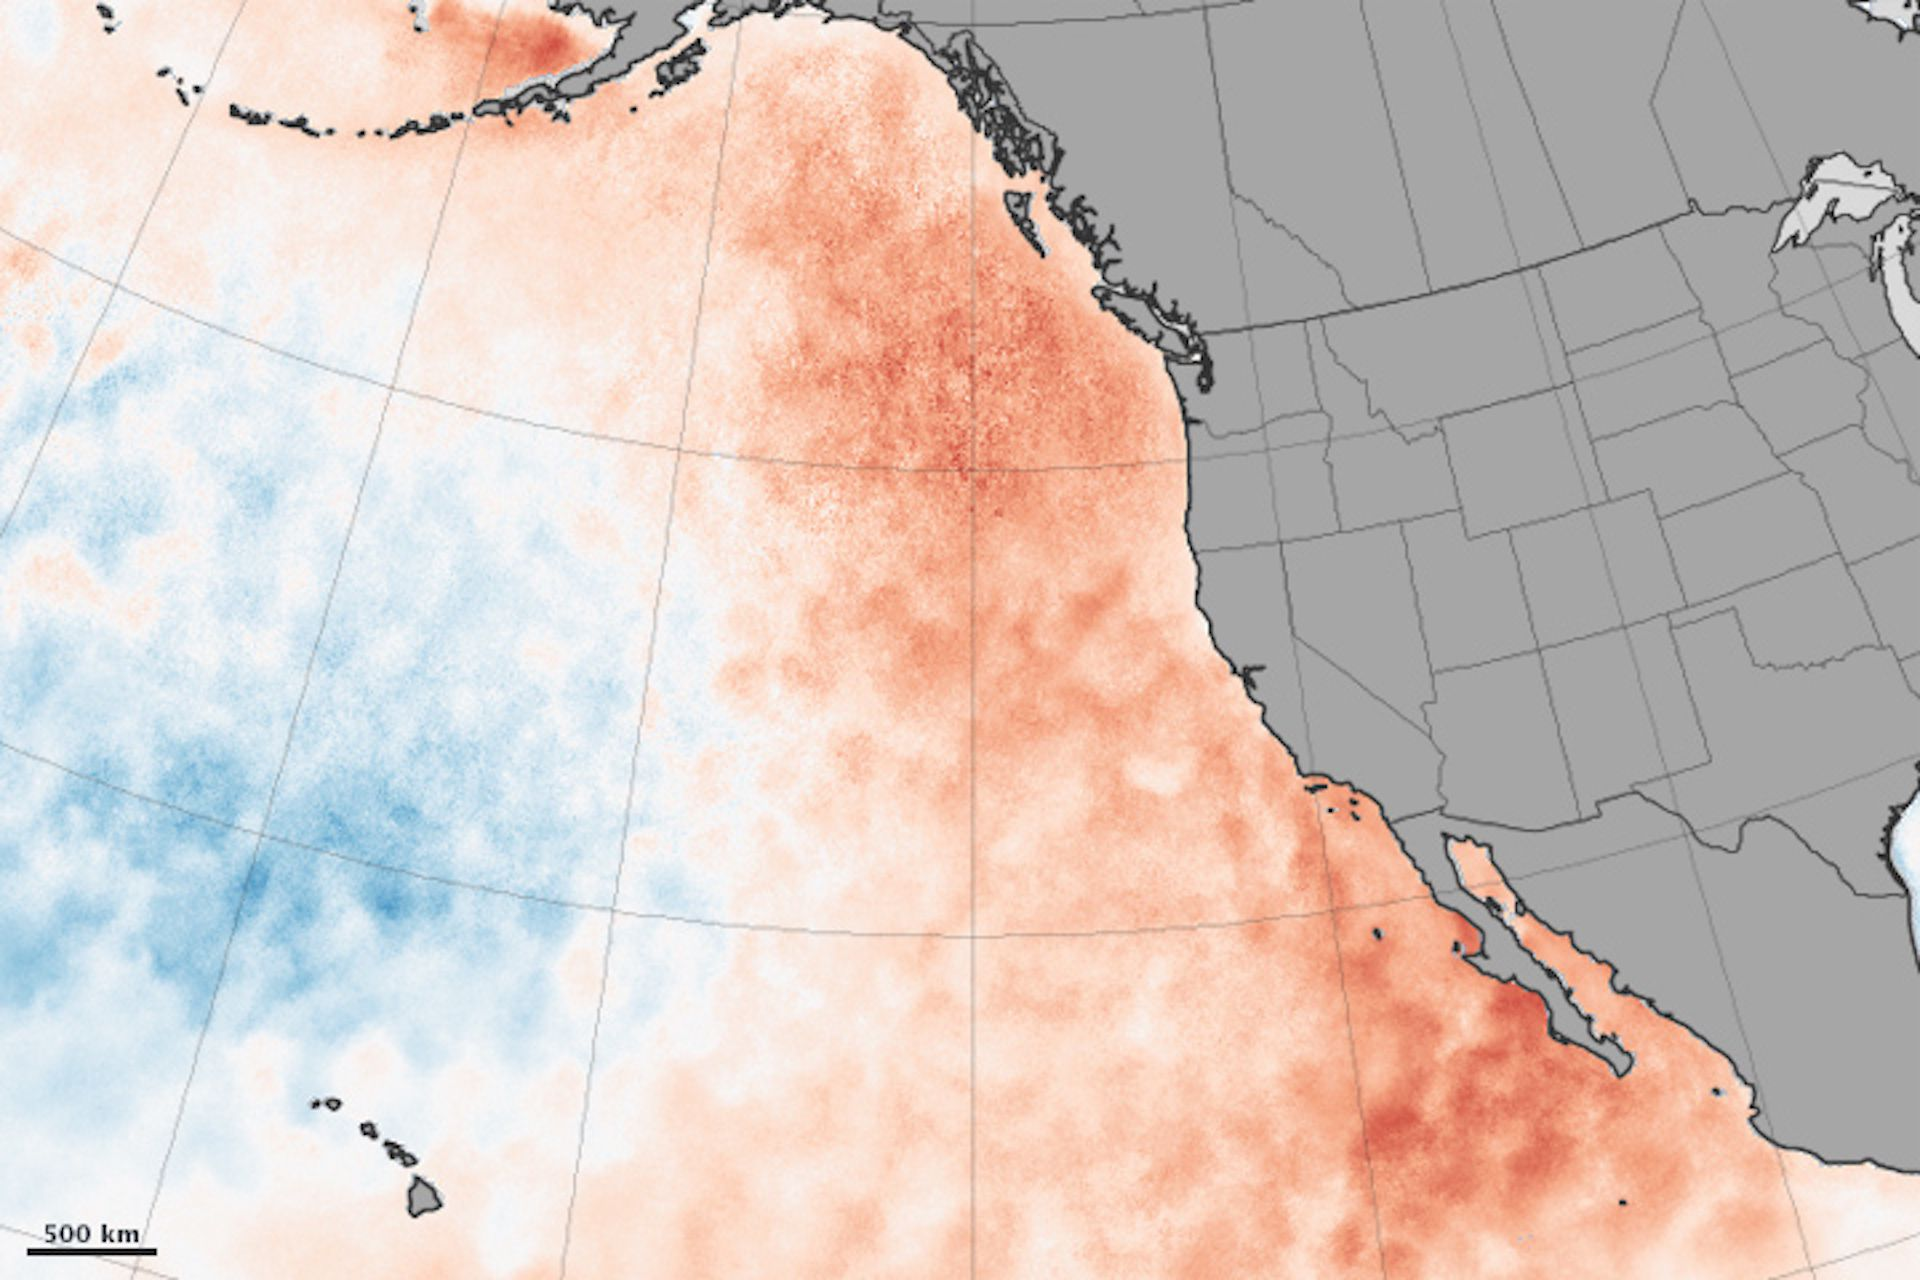 Sea surface temperature anomalies in the northeastern Pacific Ocean in March 2015.